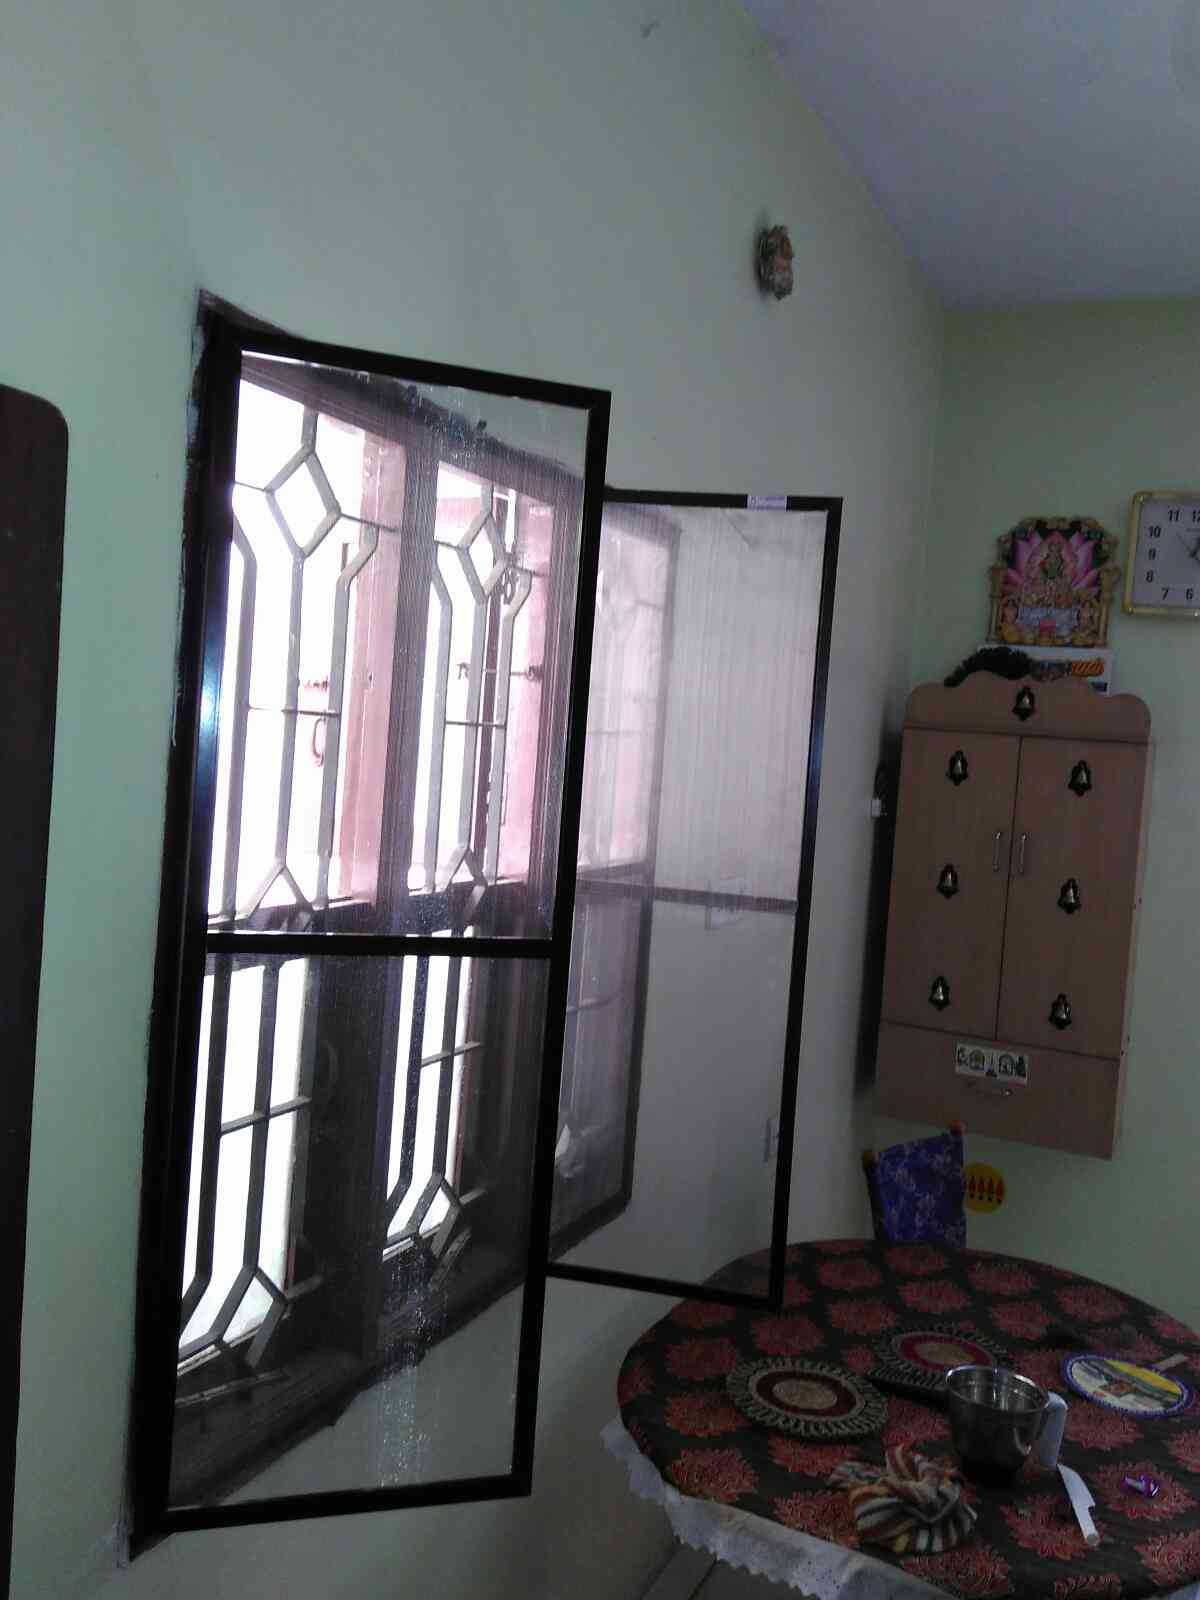 Mosquito Net In Madurai, Thangam Designer 9842133337, Door Type Mosquito Nets In Madurai, Mosquito Net Dealers In Madurai, If you want Free Browsers And Demo Images And Prizes Open Our Pages Please Enter Your Name And Address Details, www.mosquitonetdealerinmadurai.com